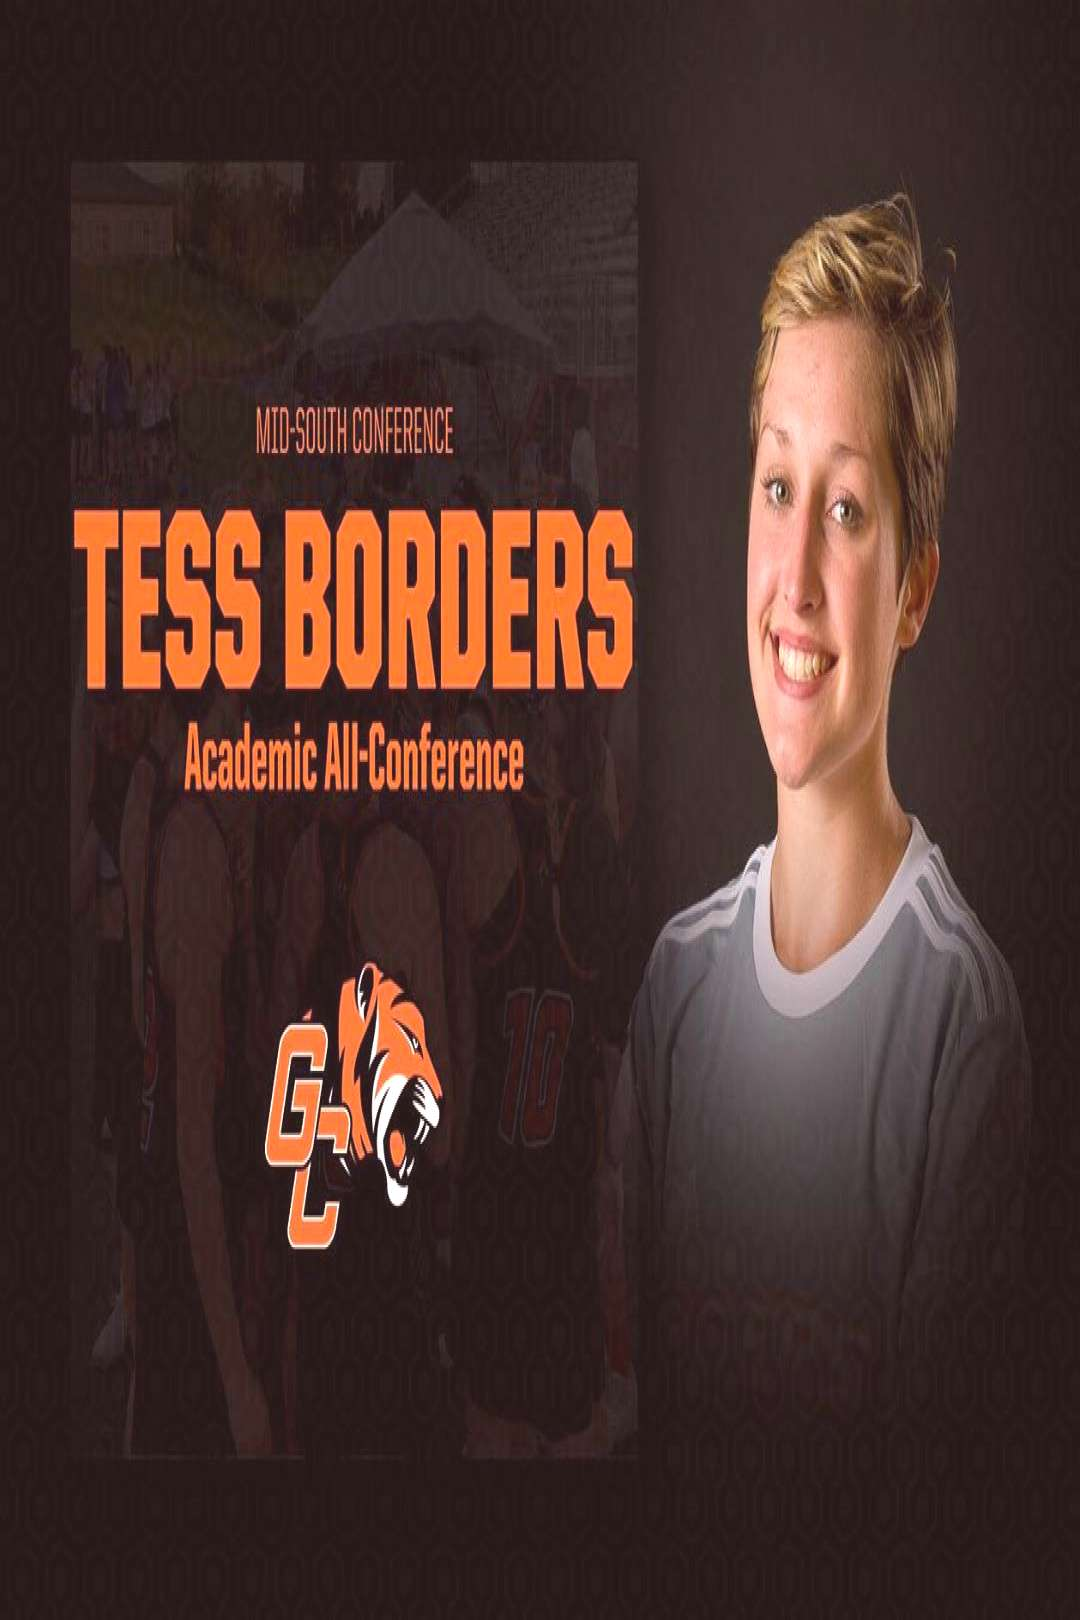 Georgetown College Lacrosse on April 20 2020 tessica and 1 person